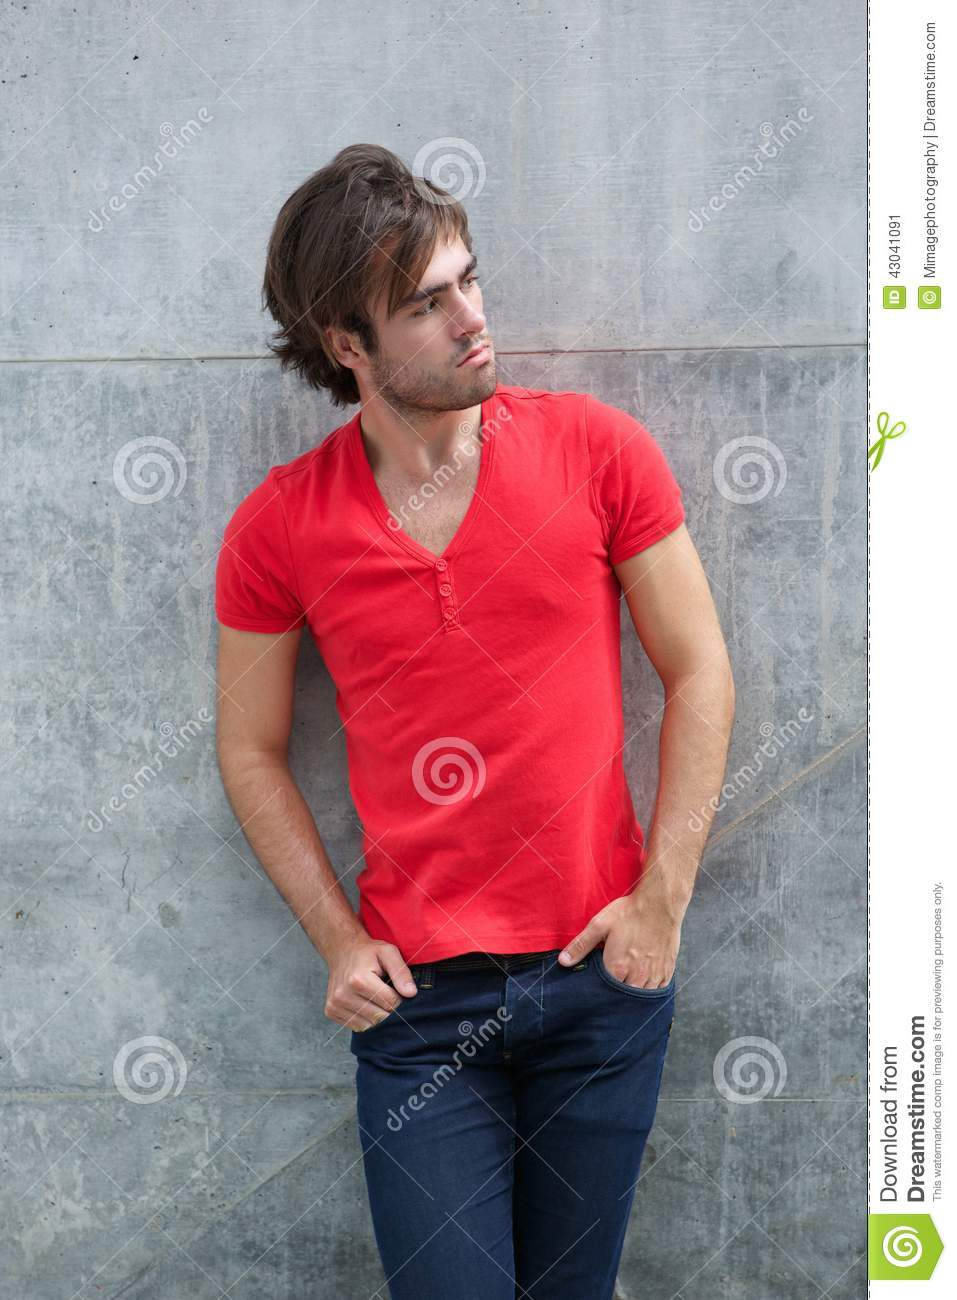 Male Model Posing In Red Shirt And Jeans Stock Photo - Image: 43041091